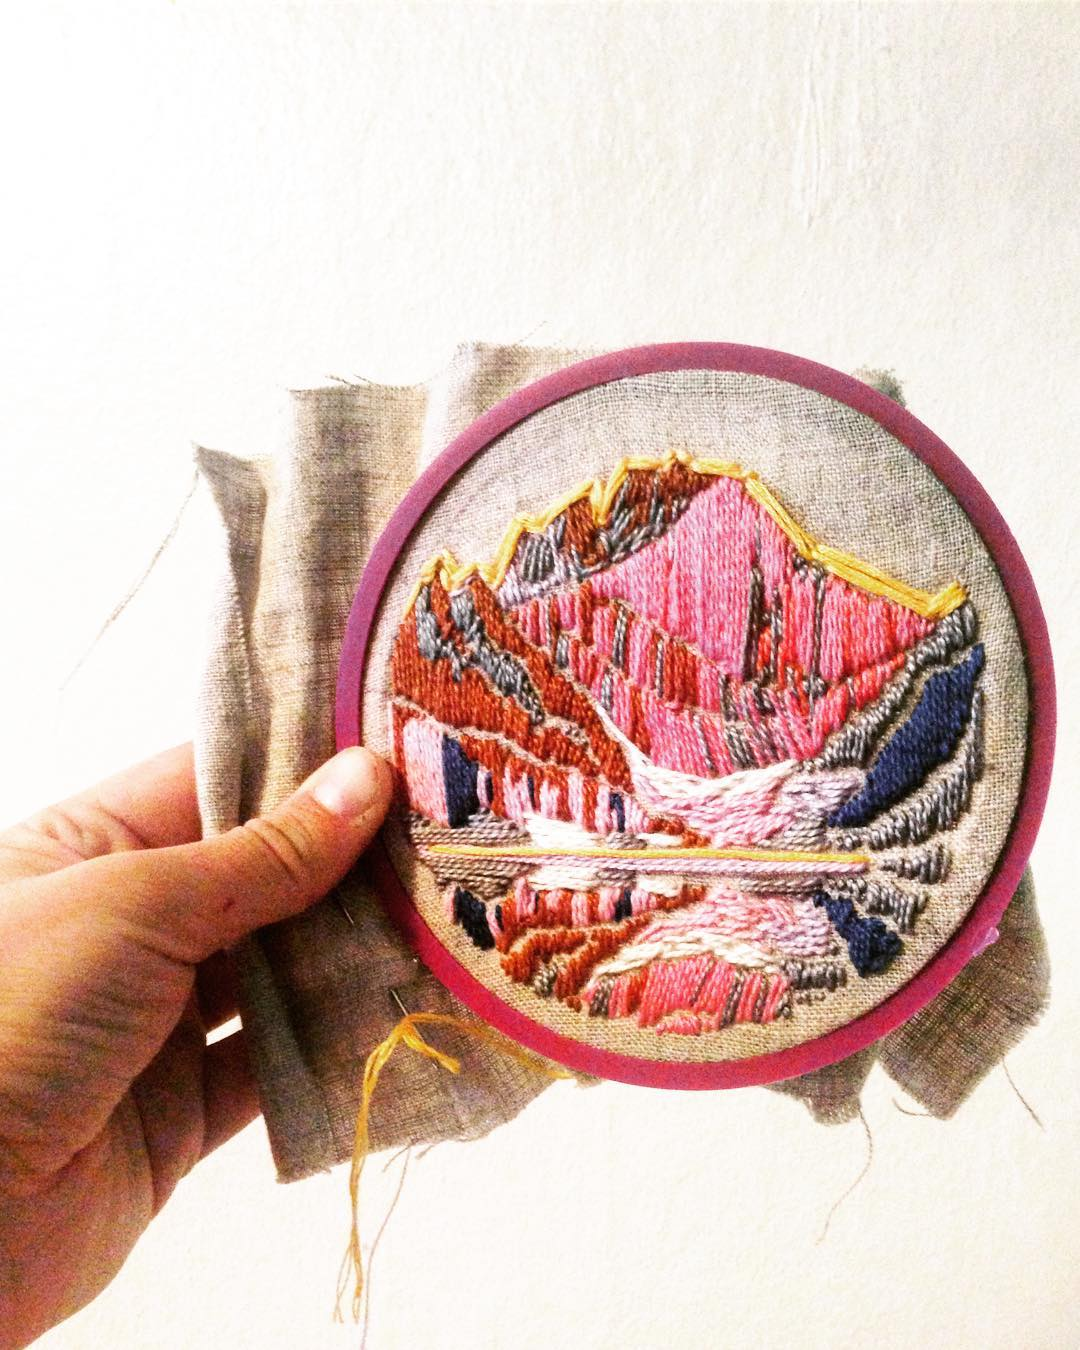 This small Grand Teton hoop has been finished and lives in the shop right now!